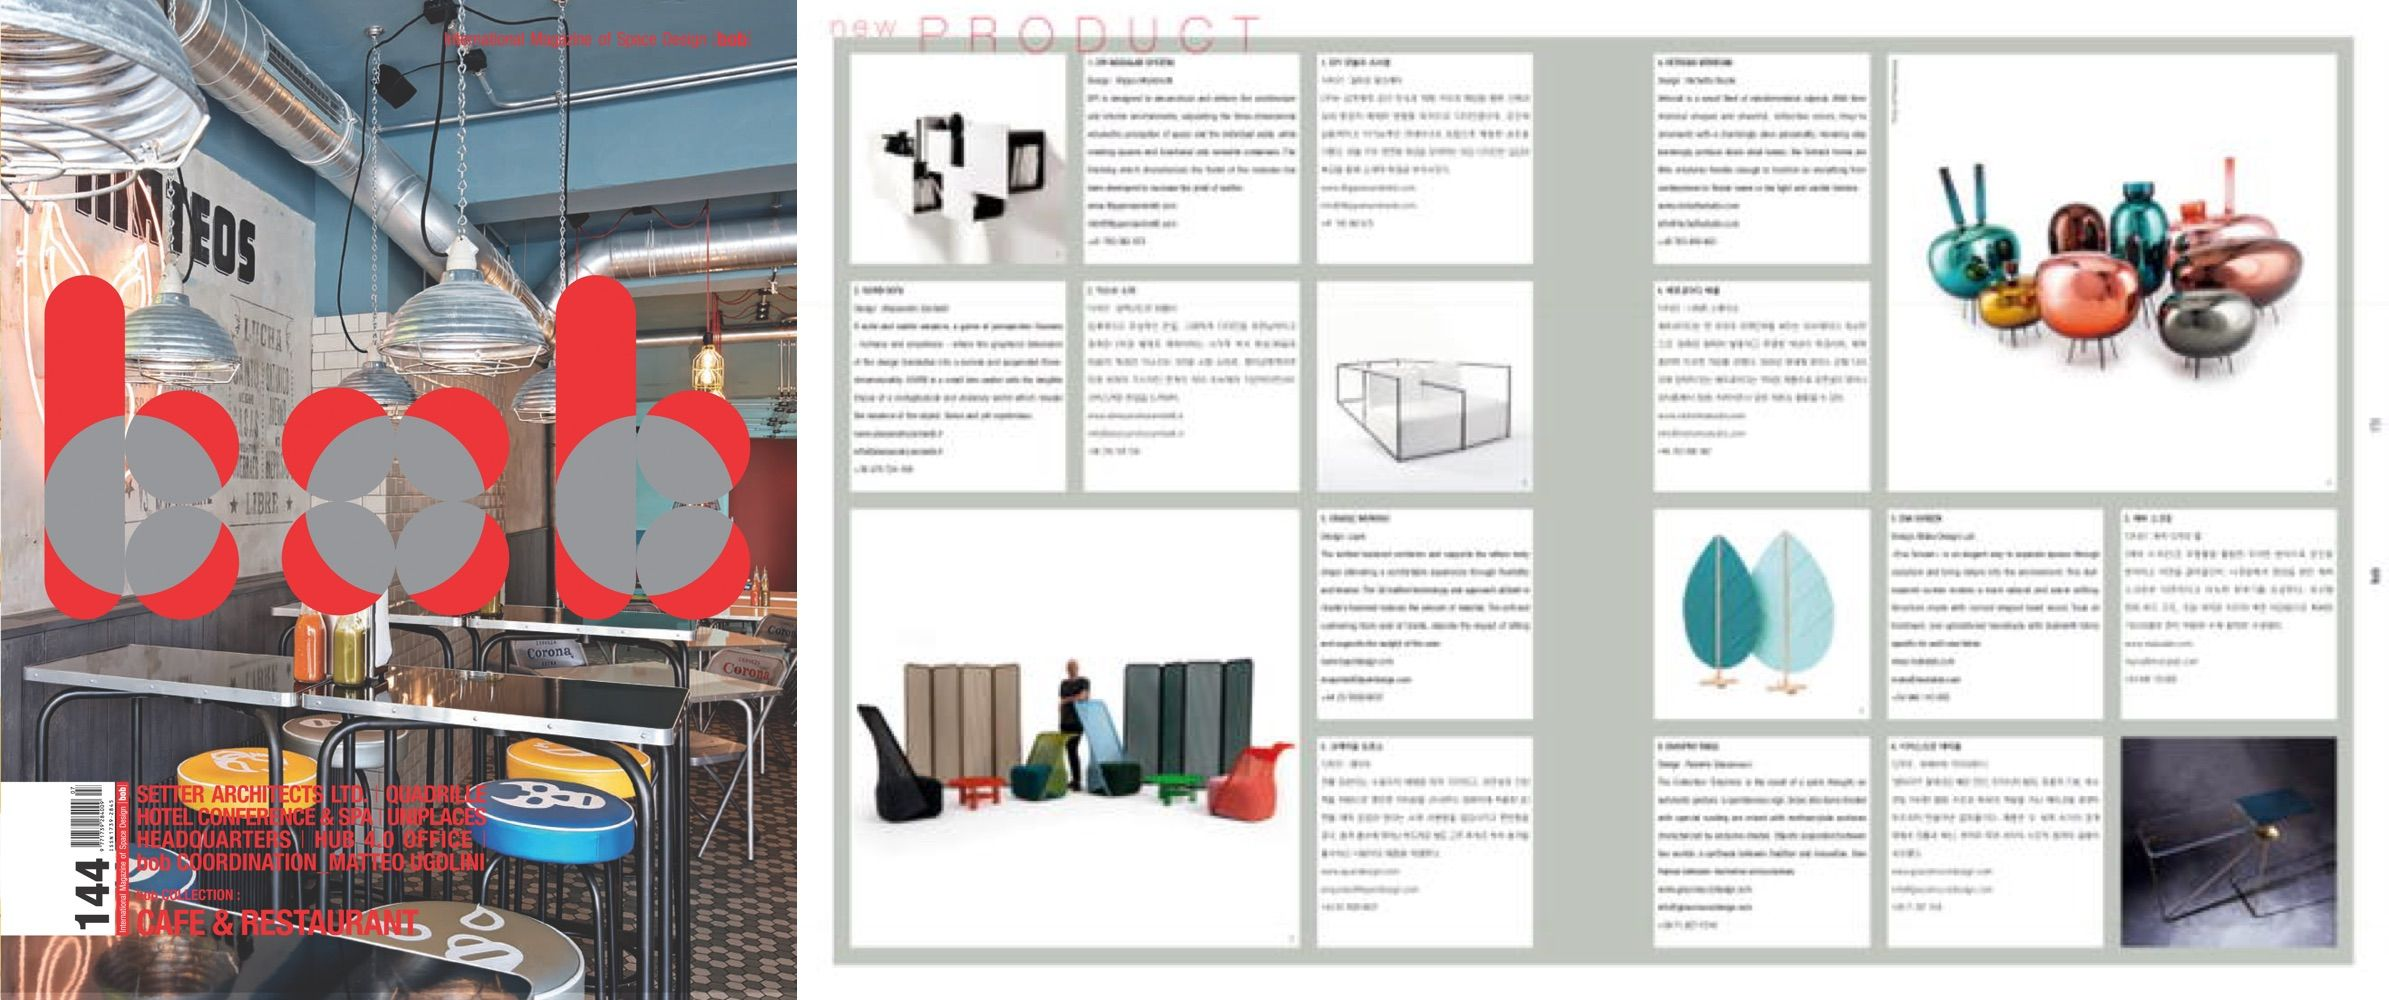 Thanks to the Korean magazine Bob for talking about the wall unit DPI by Mogg / Design Filippo Mambretti. We like to be so international!  http://www.mogg.it/Prodotti/Storage/DPI/  #mogg #moggdesign #dpi #filippomambretti #wall #unit #interiordesign #interior #design #italianfurniture #italian #furniture #magazine #bob #korea